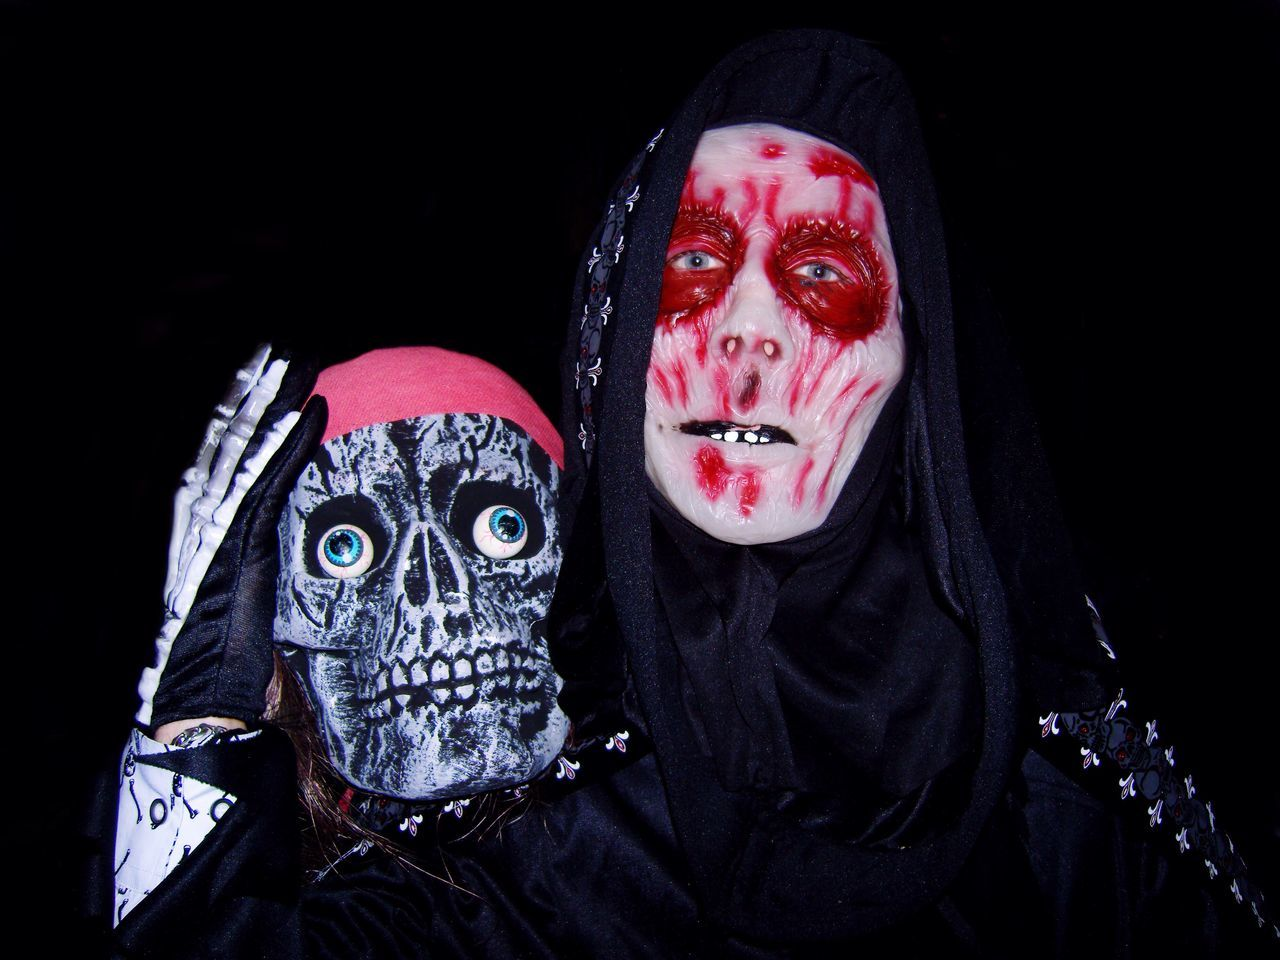 Halloween scene Spooky Horror Halloween Evil Face Paint Looking At Camera Portrait Stage Make-up Black Background Make-up Night Adult Black Color Clown People Mature Adult Disguise Shock Human Body Part Men